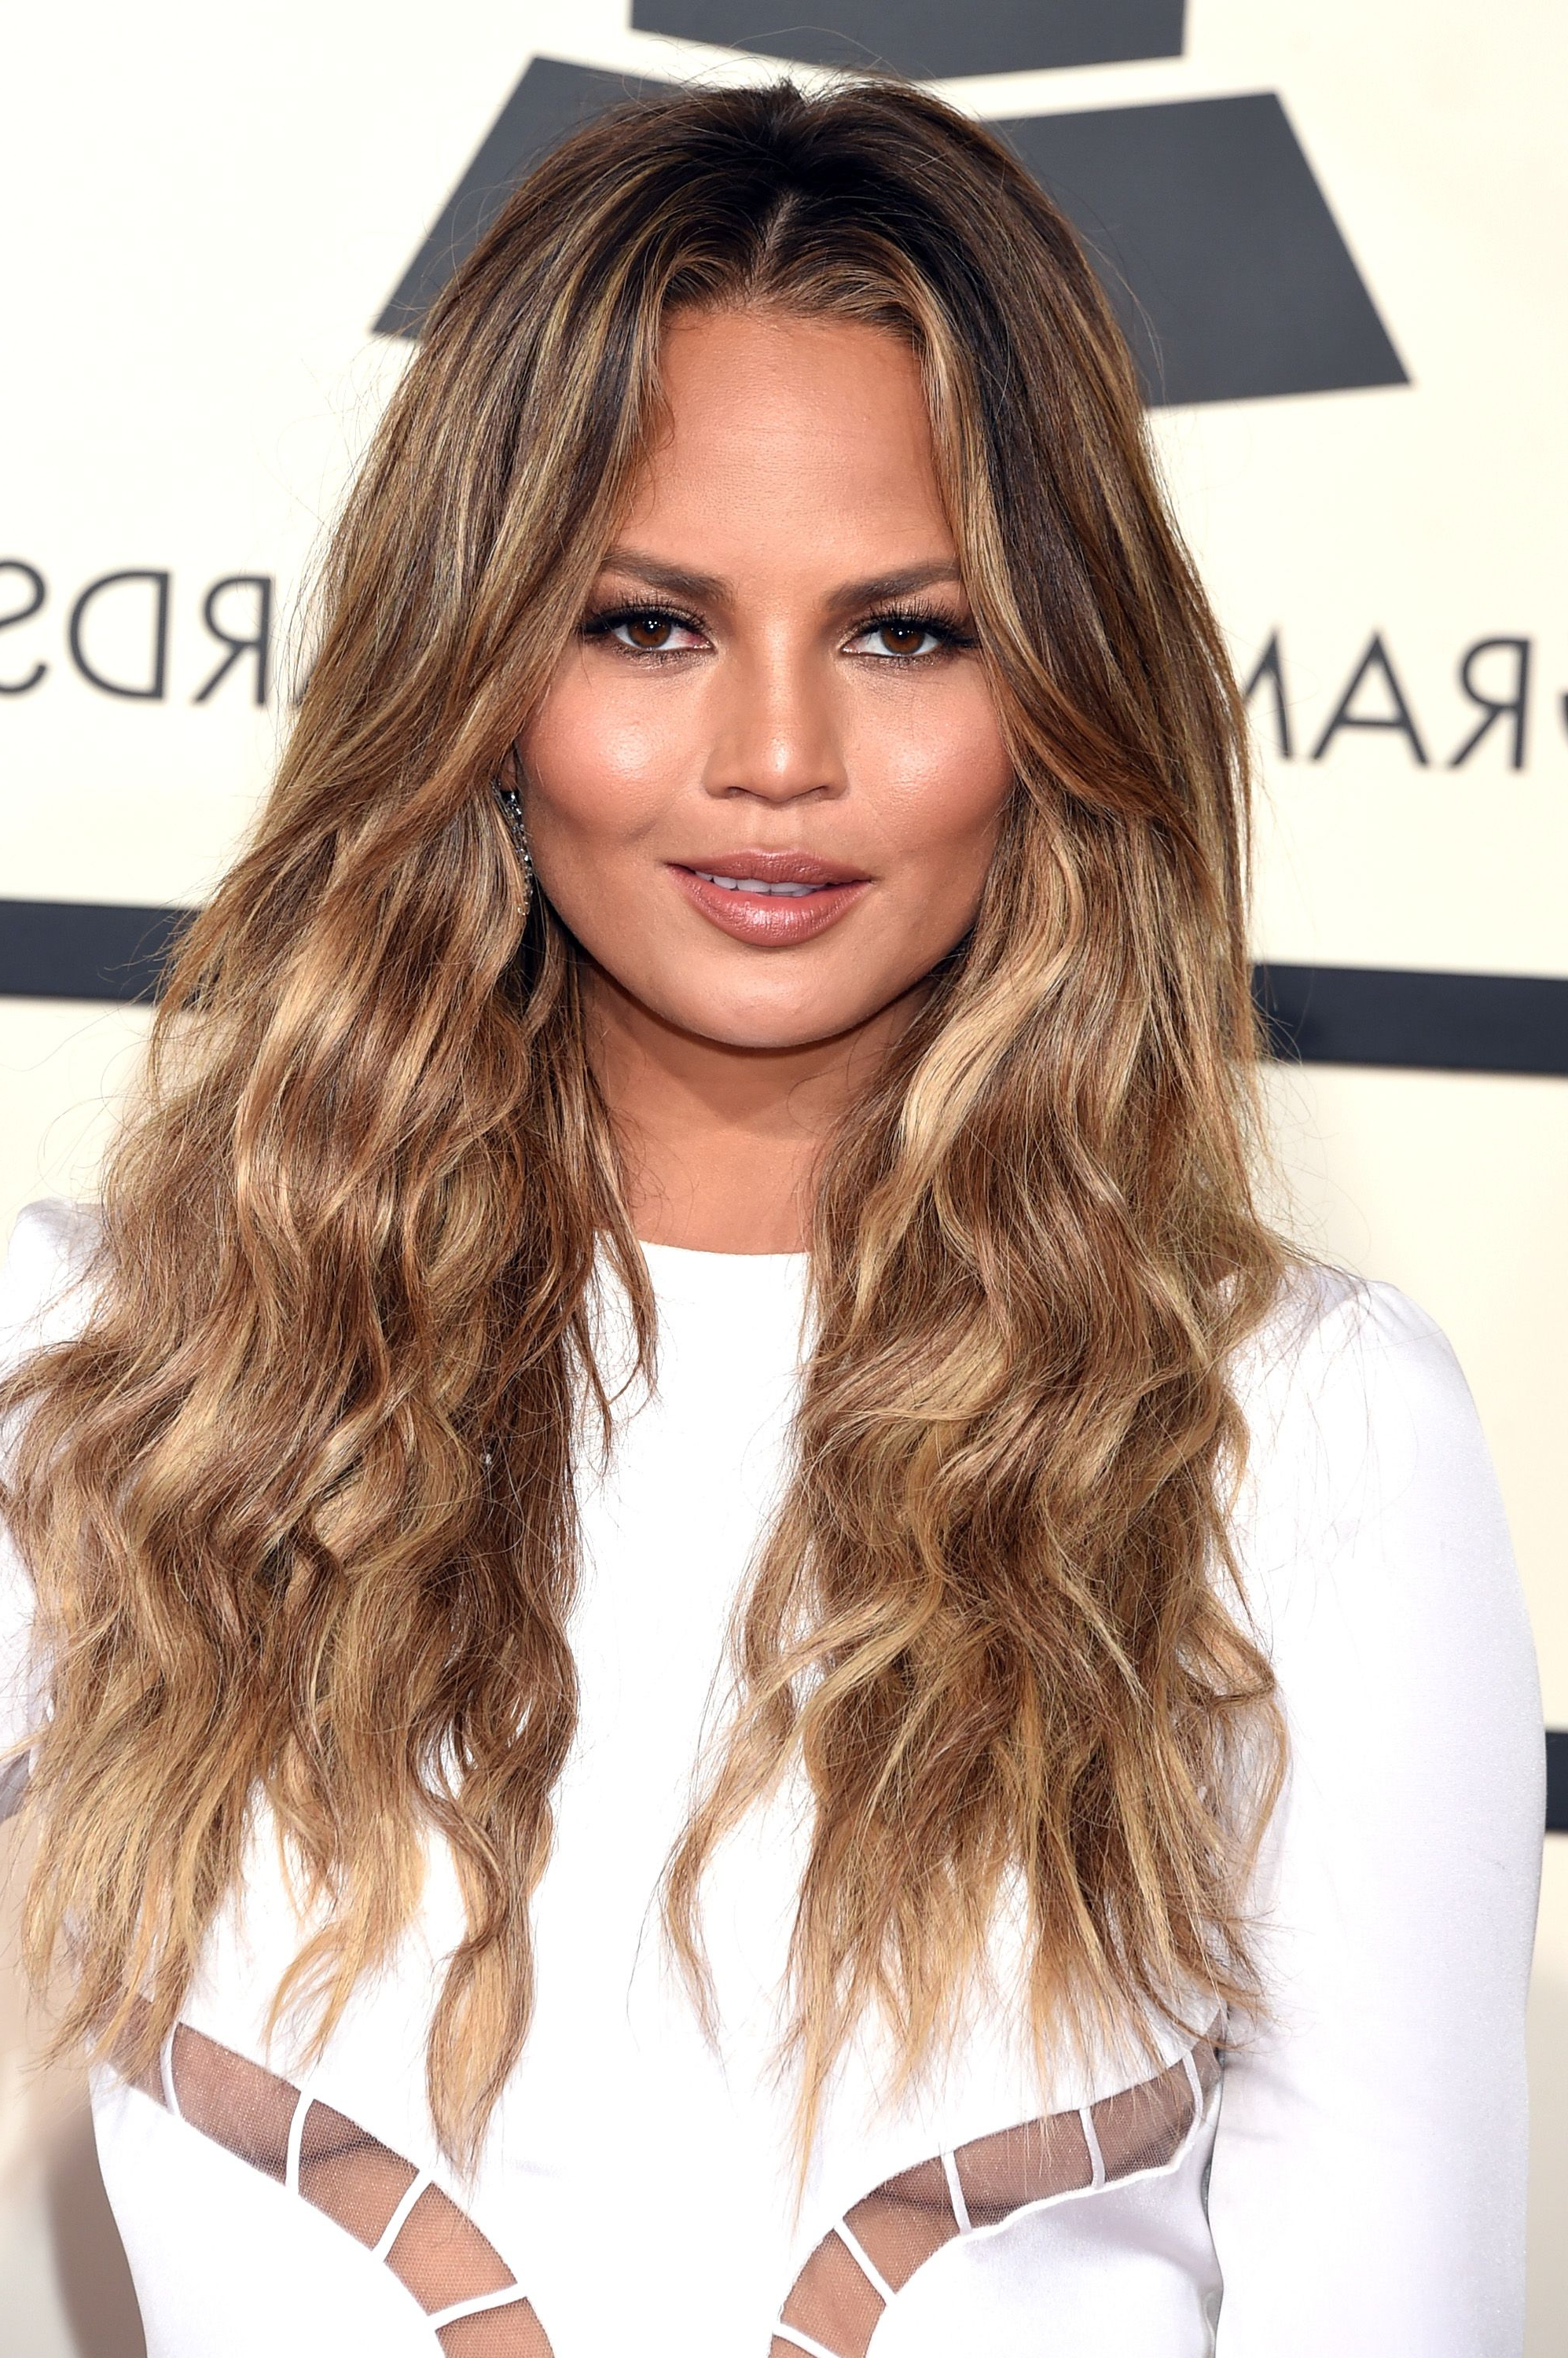 40 Best Layered Haircuts, Hairstyles & Trends For 2018 Pertaining To Latest Long Layered Waves Hairstyles (View 10 of 20)